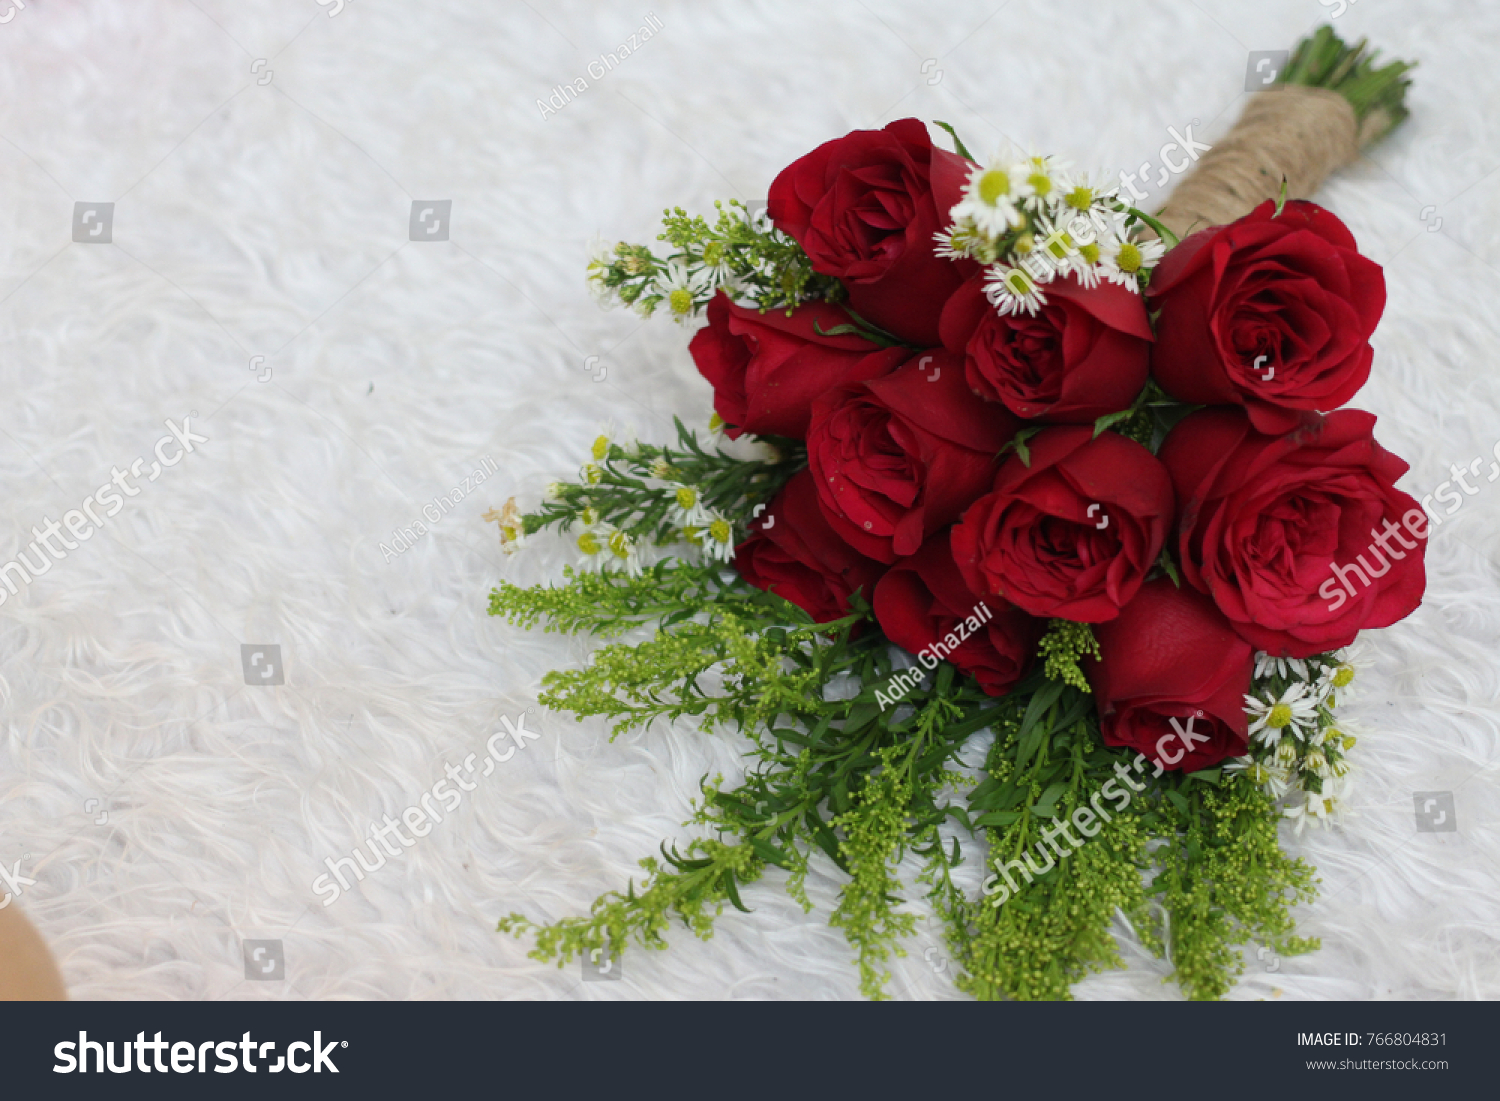 Red Rose Bouquet On White Carpet Stock Photo Edit Now 766804831